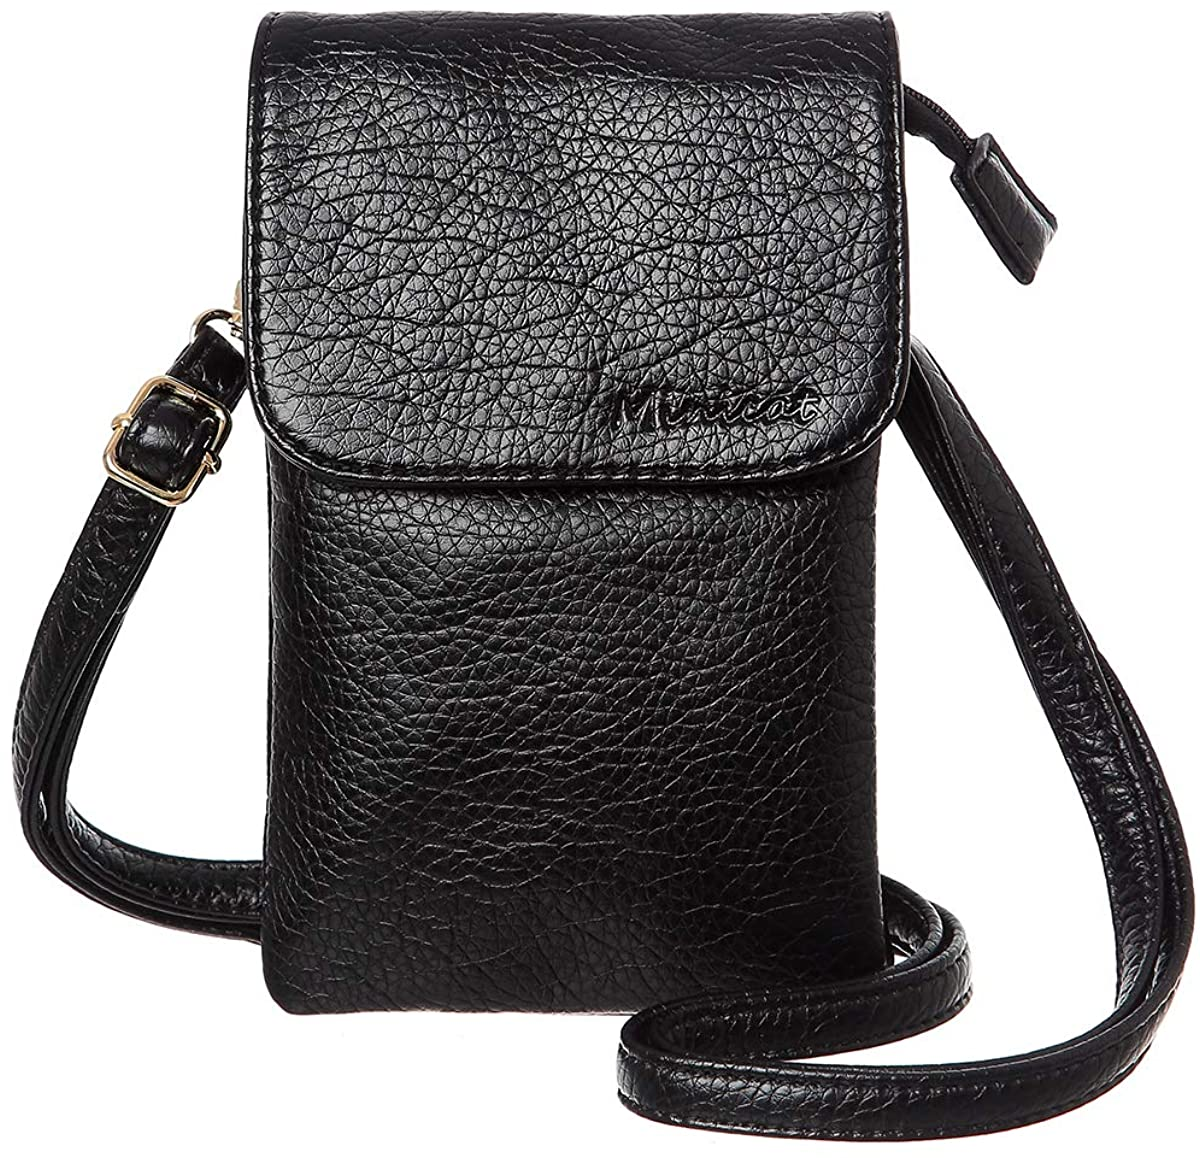 MINICAT Roomy Pockets Series Small Crossbody Bags Cell Phone Purse for Women